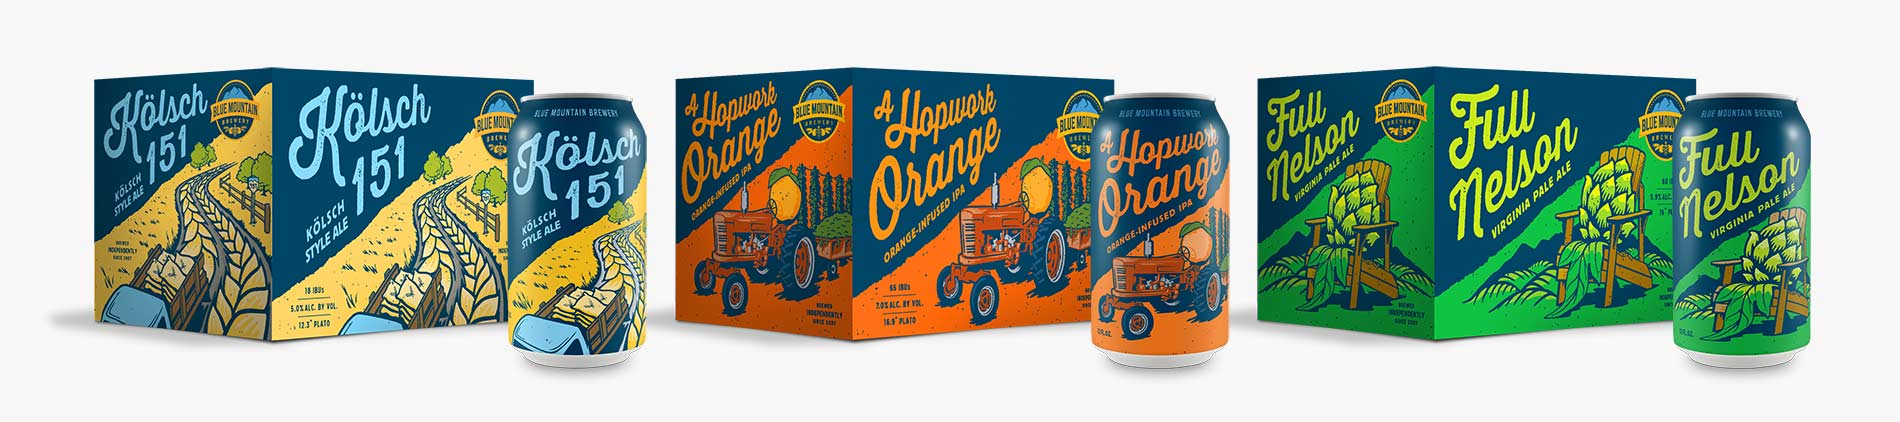 Craft-Beer-Can-Design-Blue-Mountain-Brewery-Can-Carrier-Box-Design.jpg